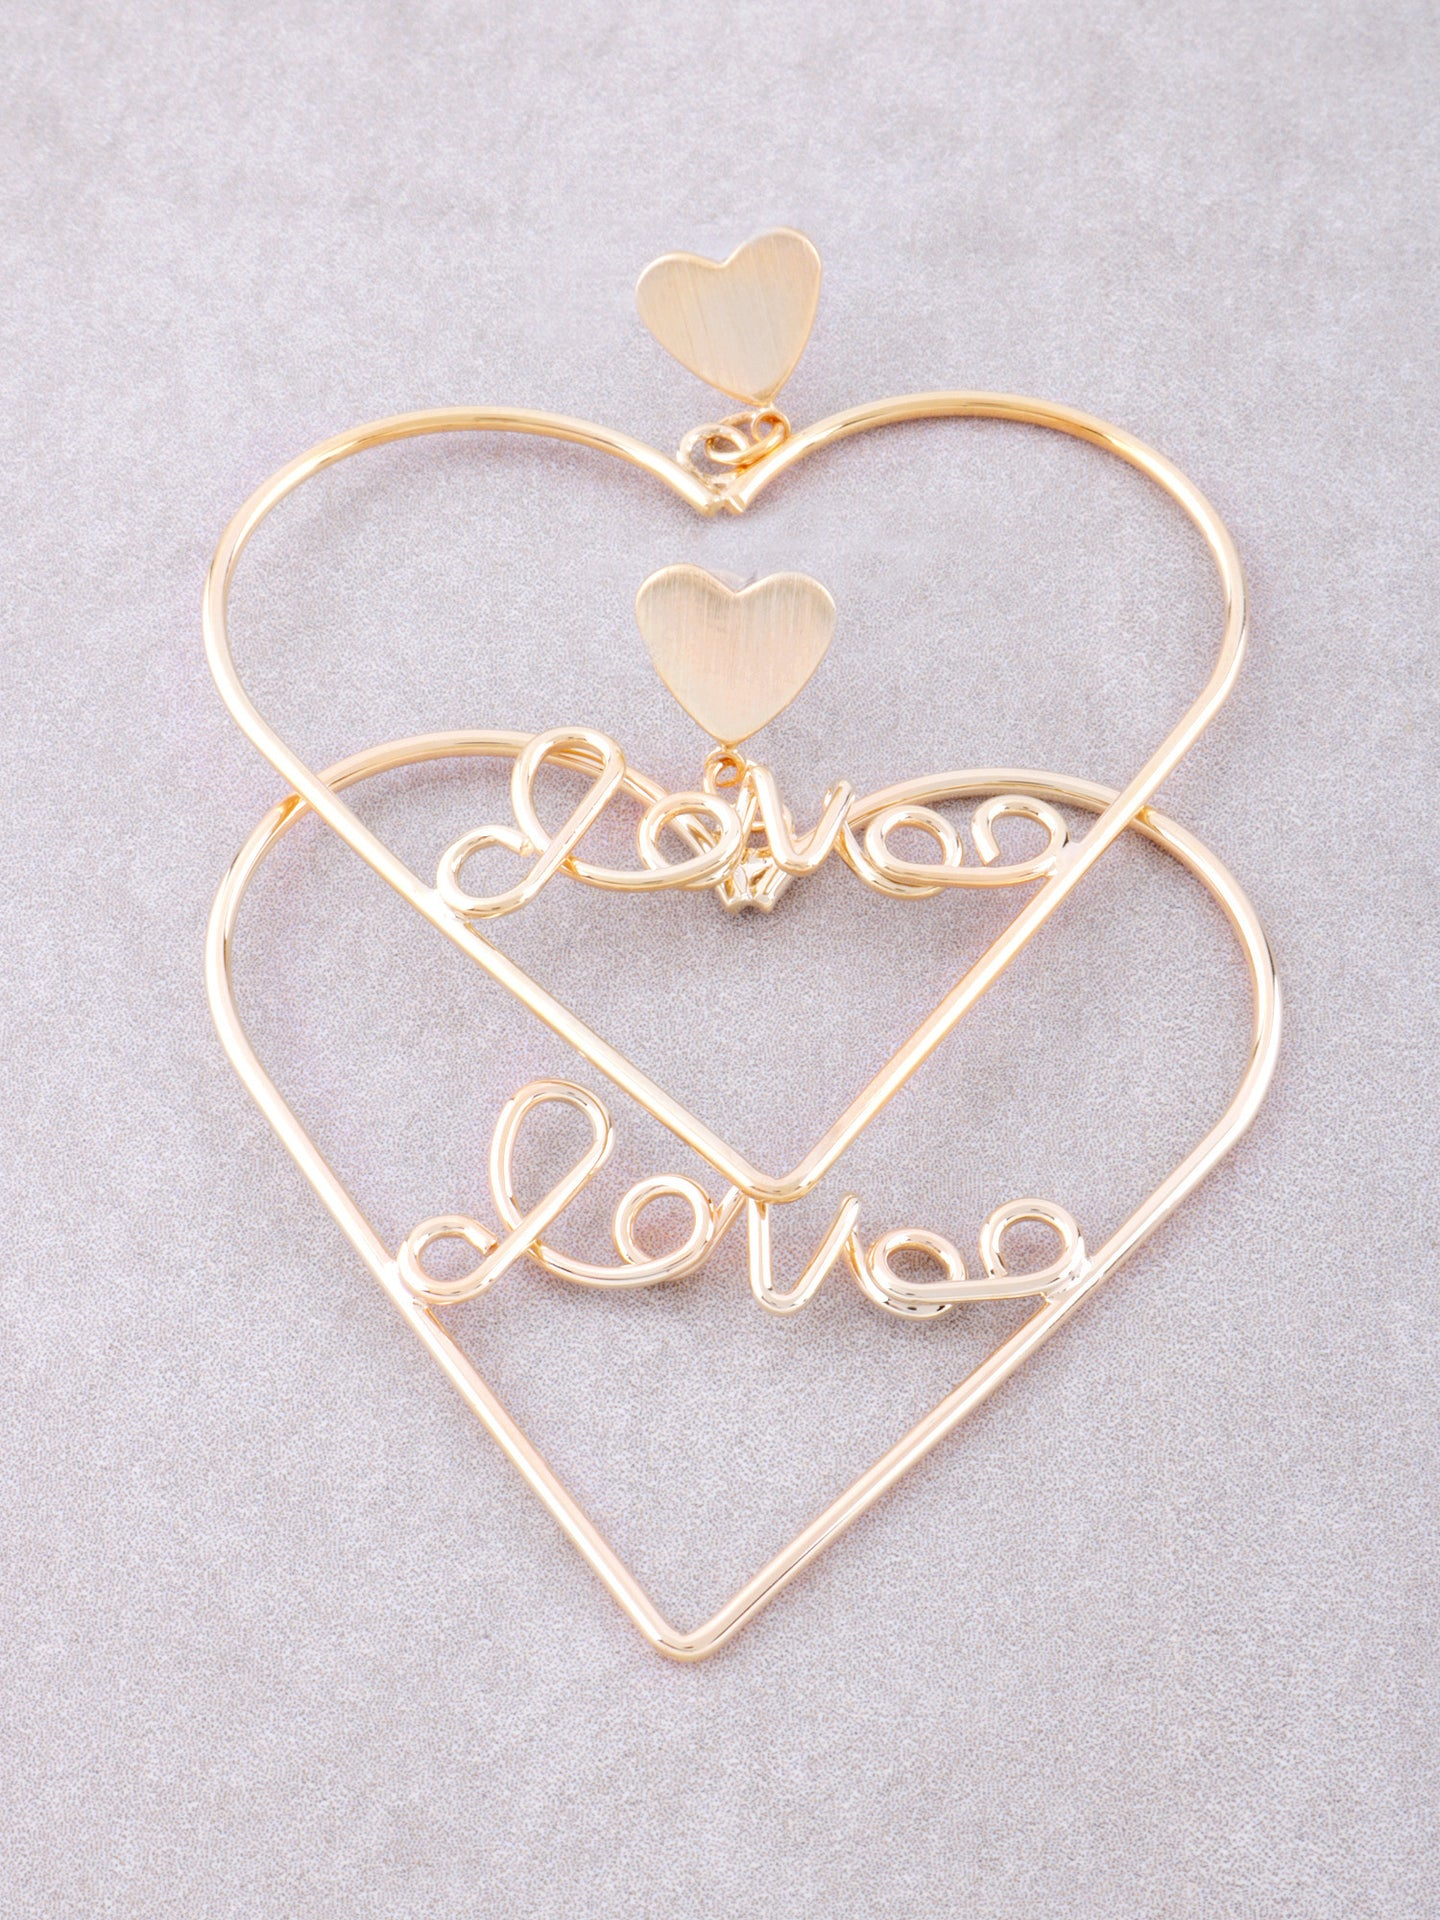 Love Me Heart Earrings Anarchy Street Gold - Details